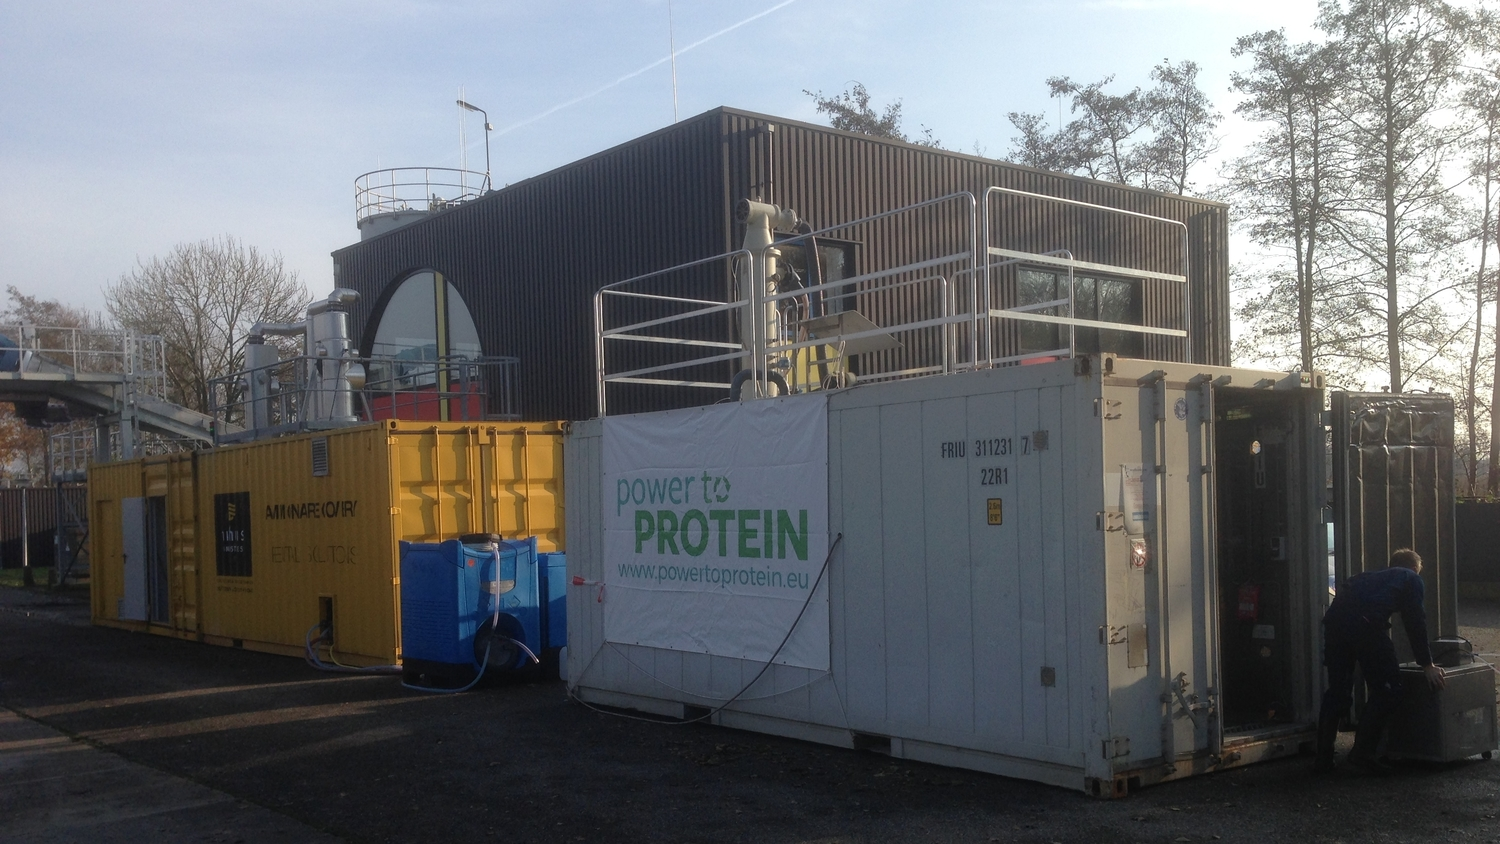 Power to protein-tegel-banner-resizeimage